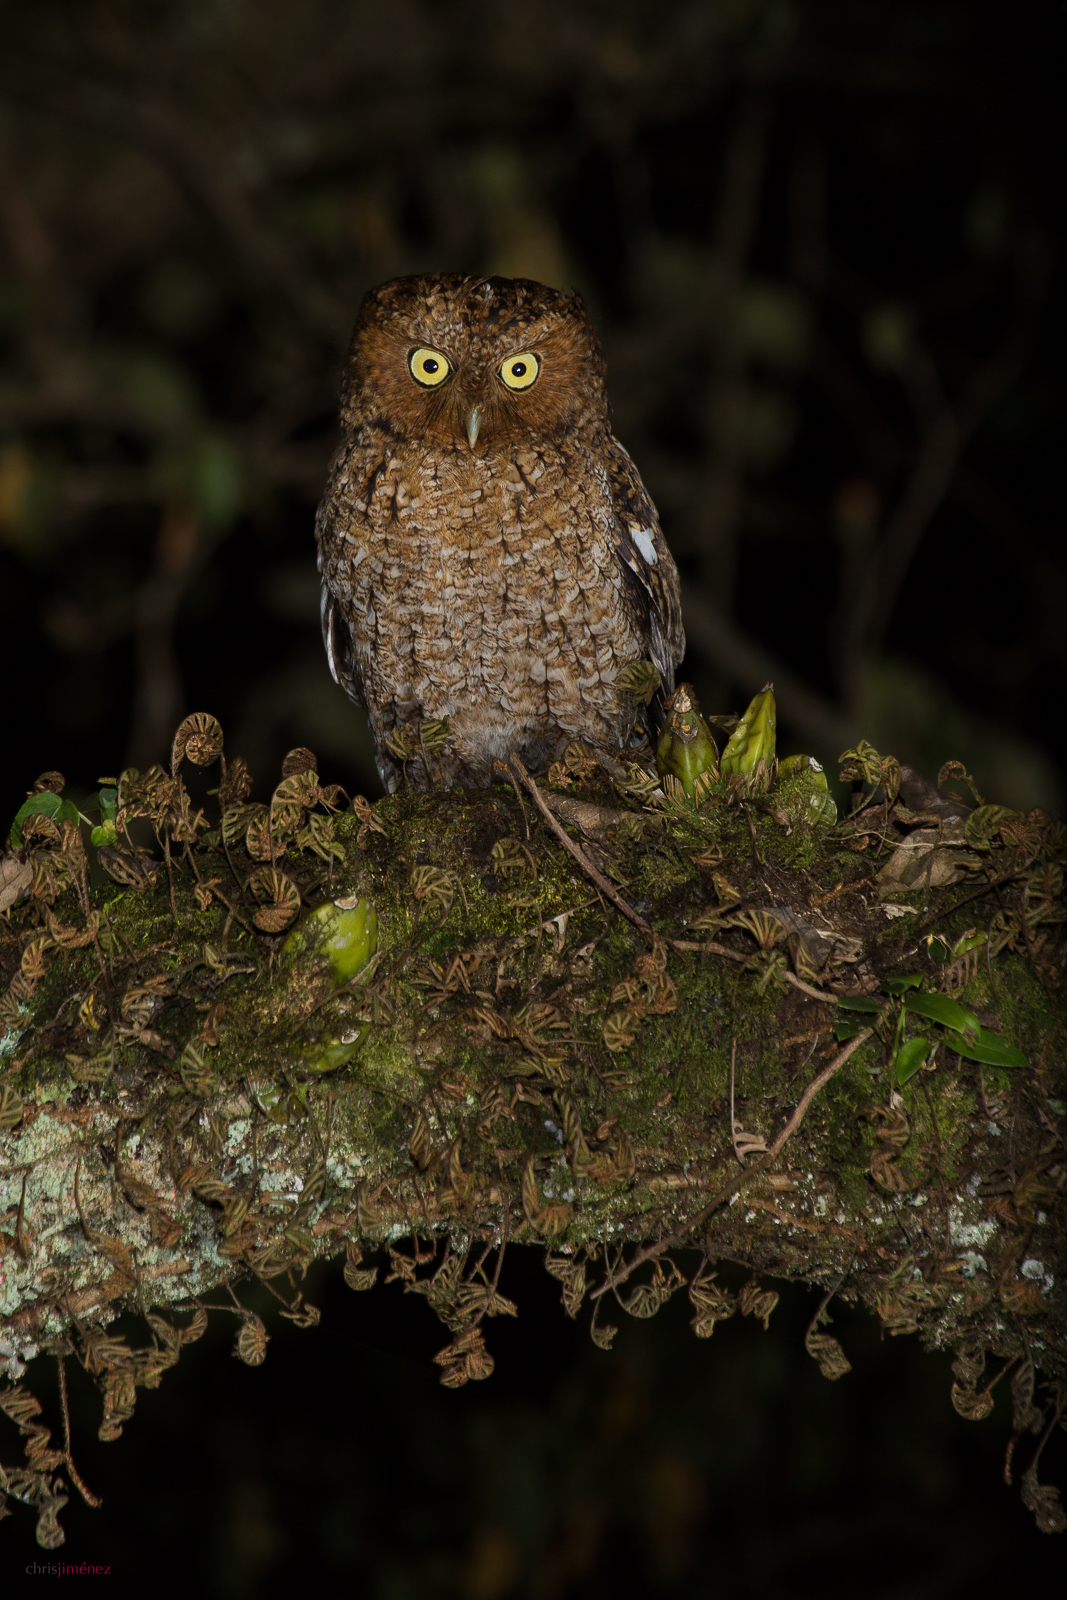 Bare-shanked Screech Owl (Megascops clarkii) perched on a arched branch at the Highlands of Costa Rica.